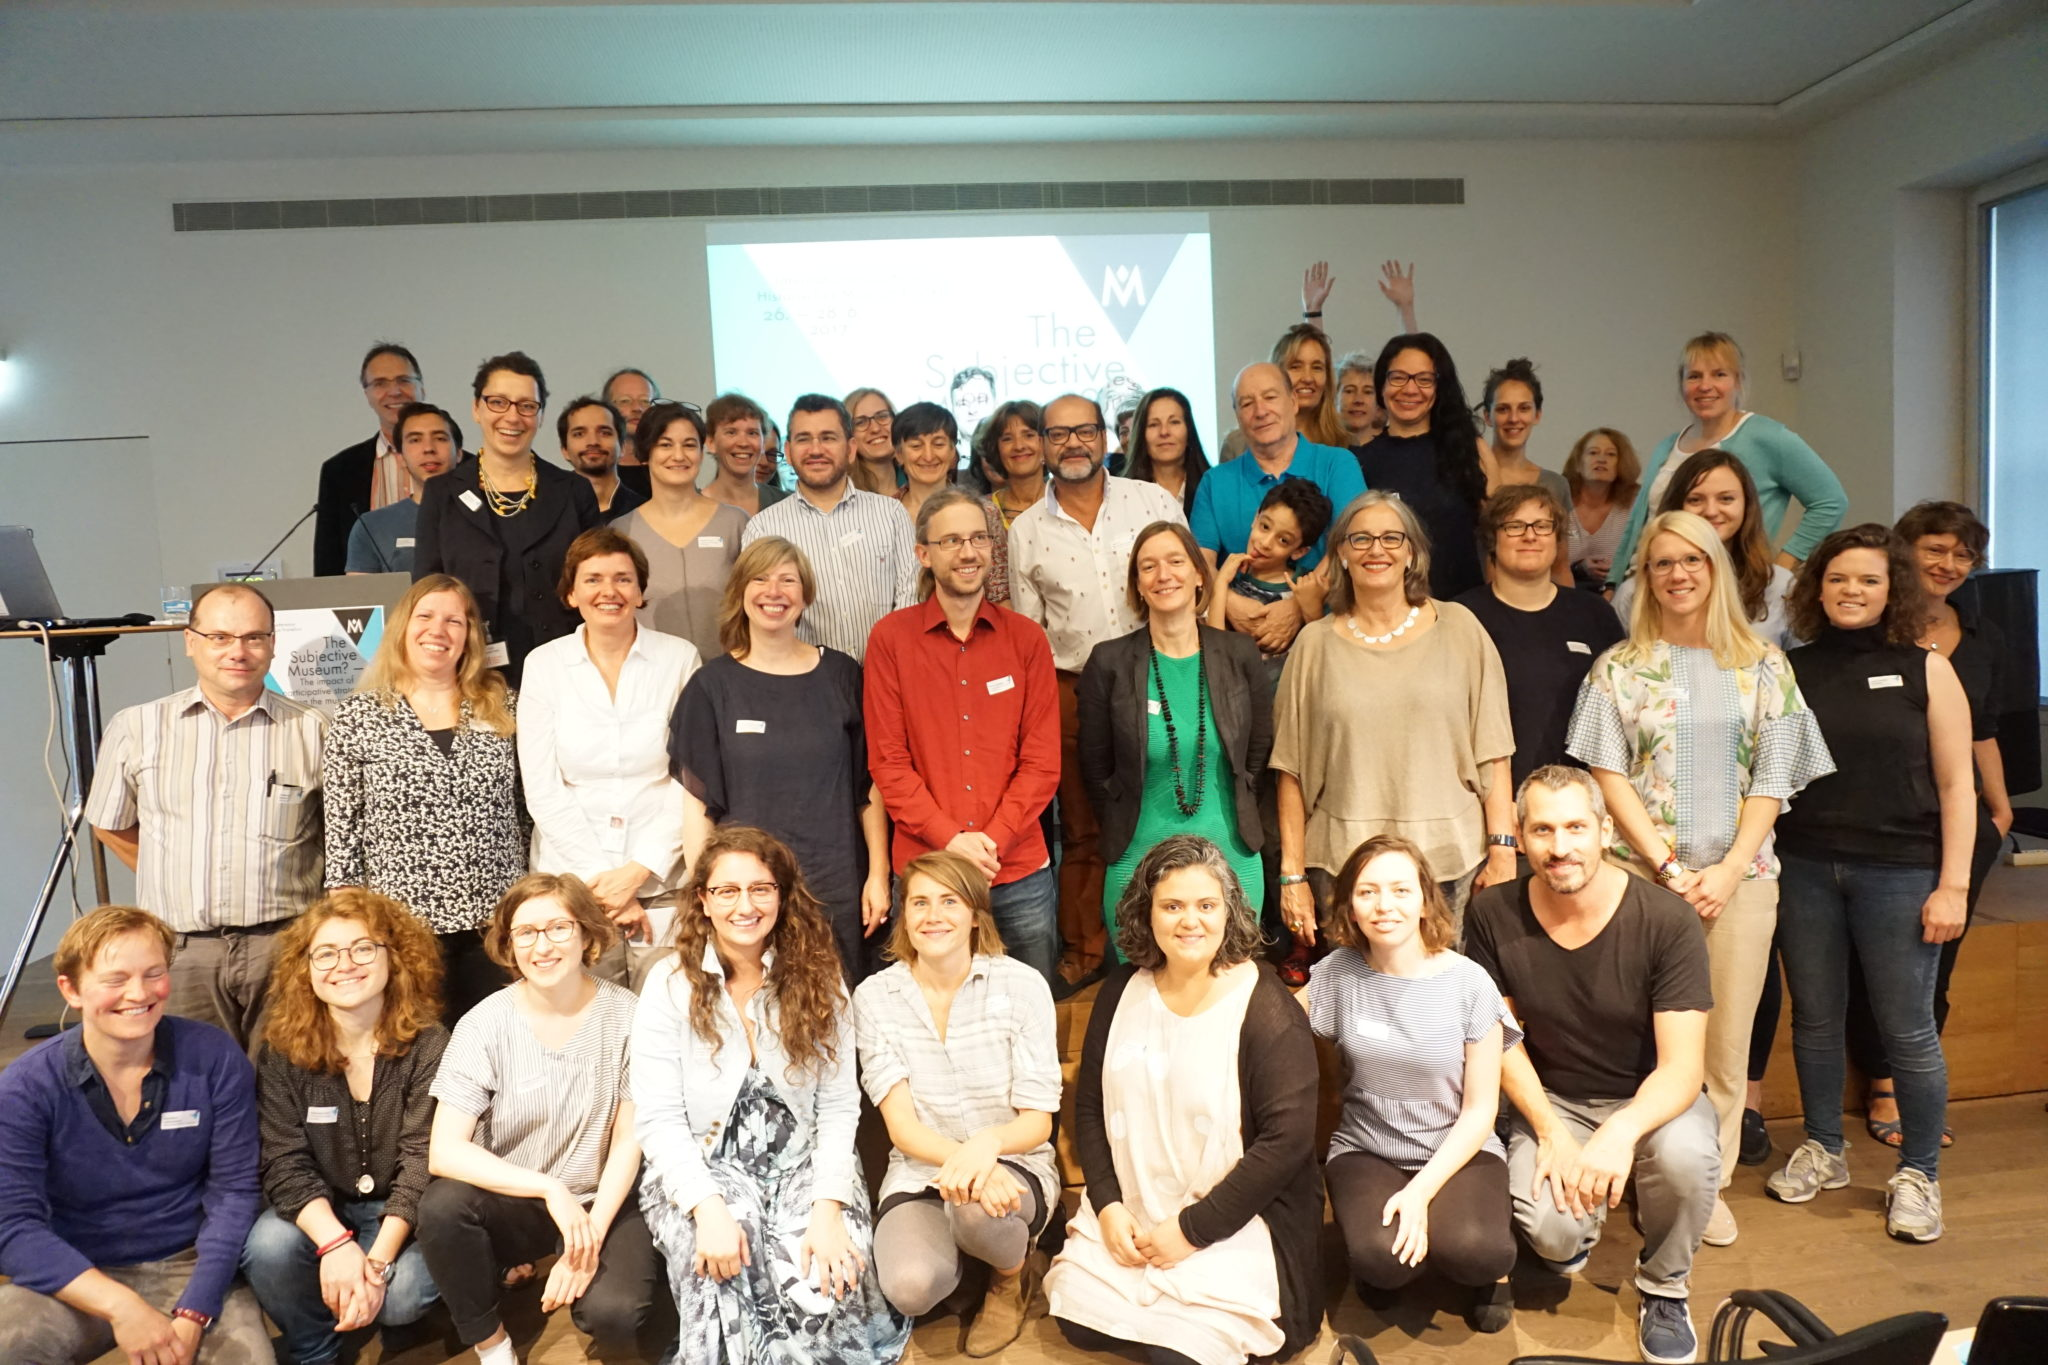 historisches museum frankfurt: the subjective Museum - group photo at the last day of the conference. Thank you!